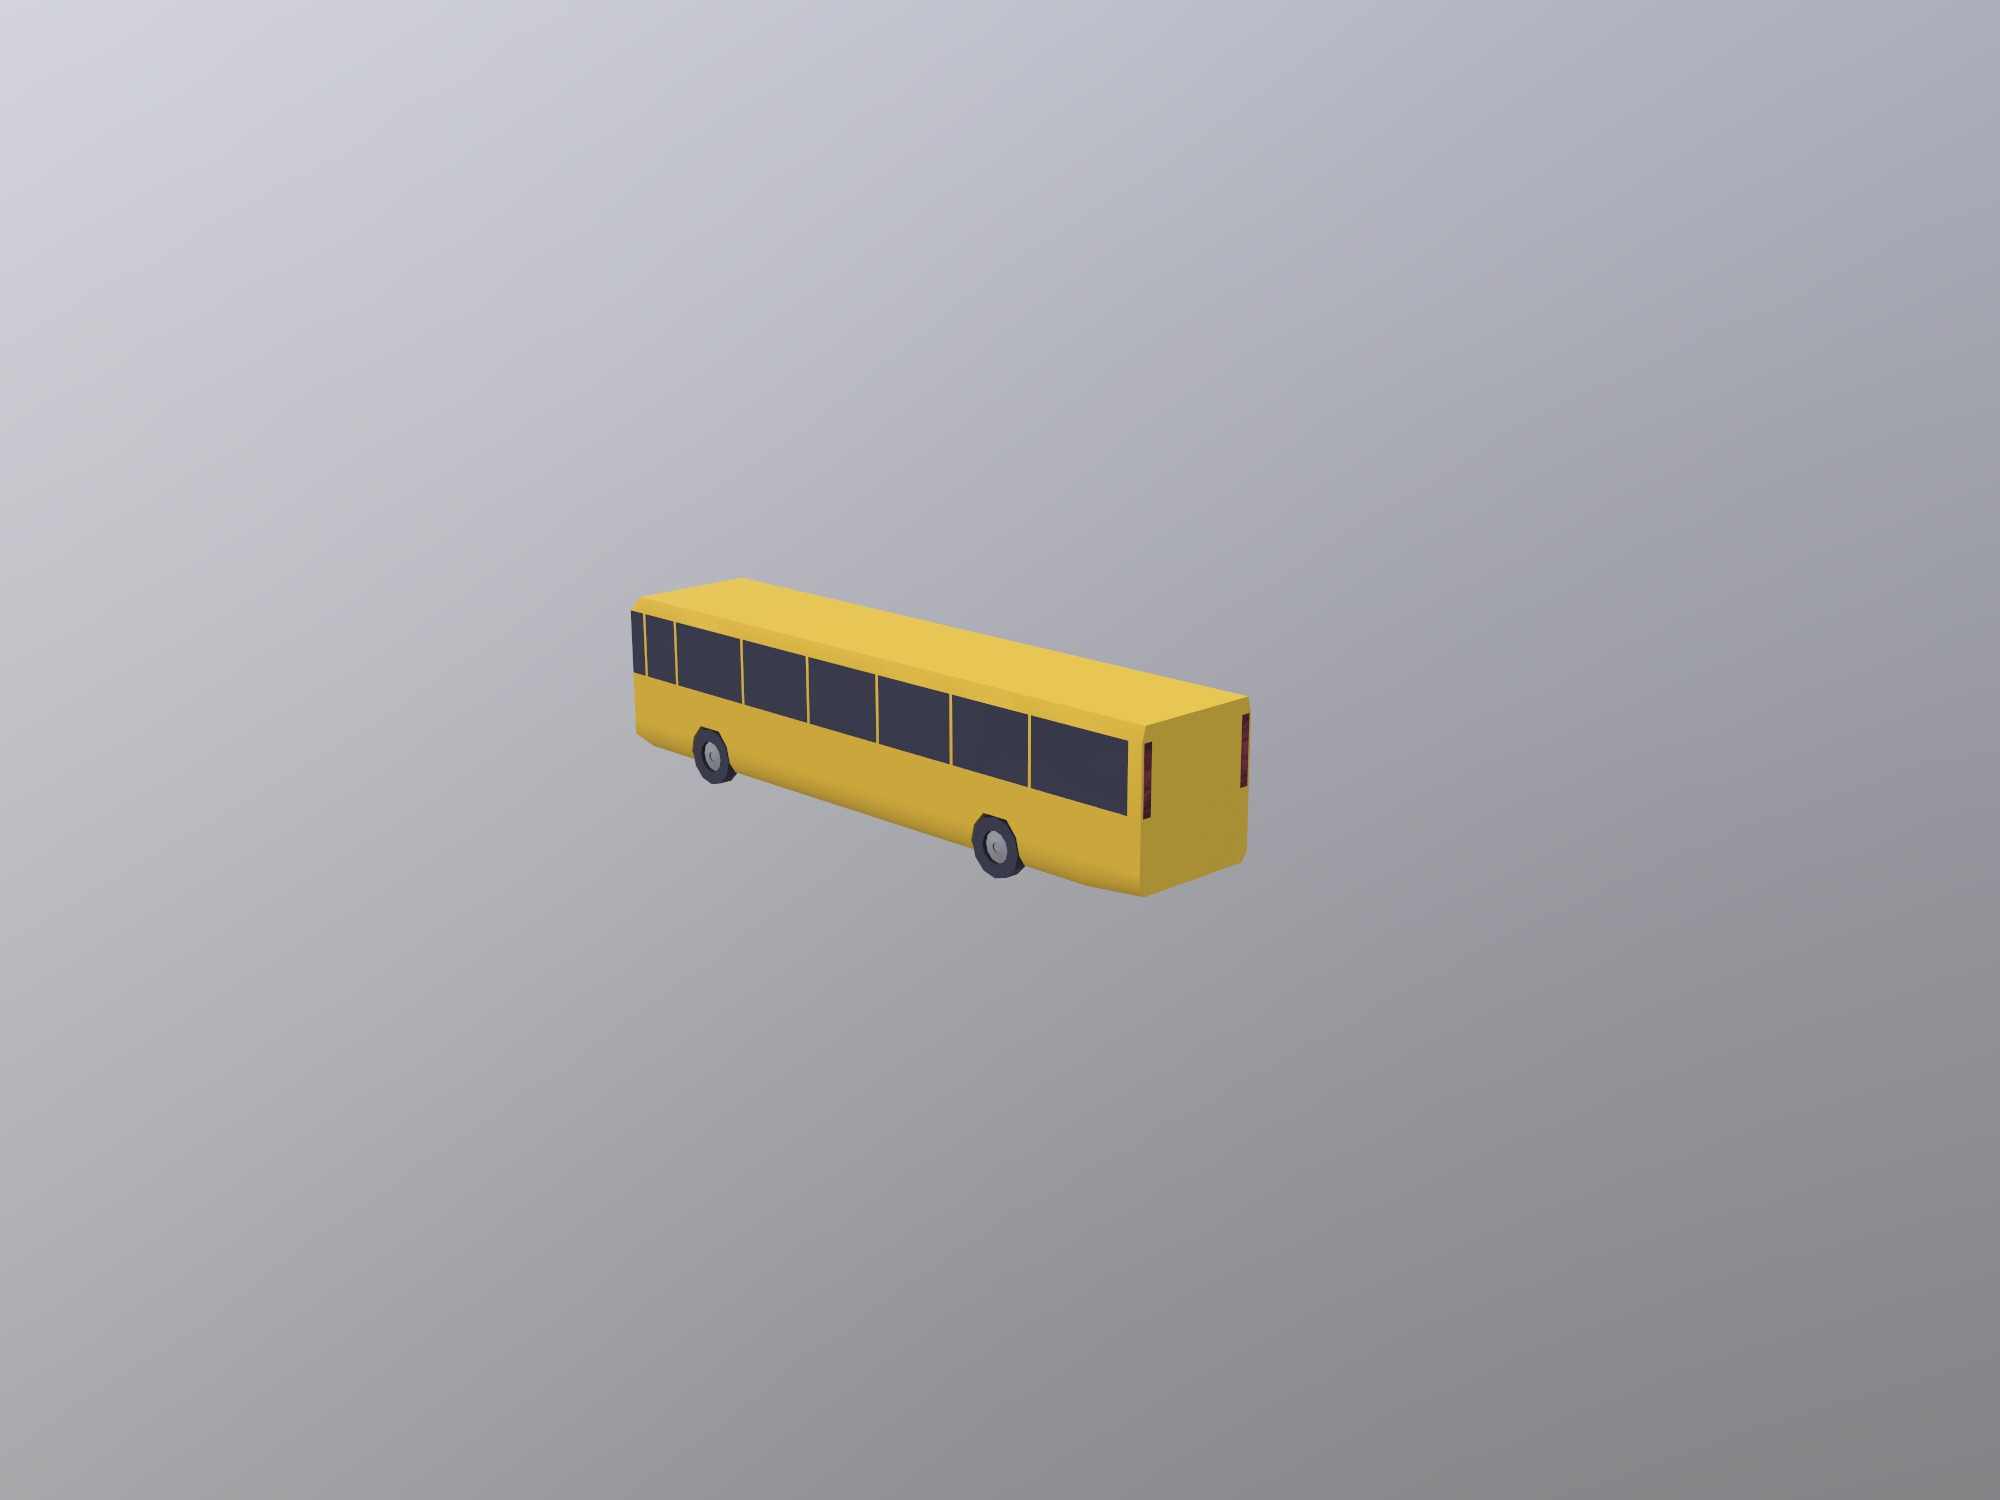 bussss - 3D design by veshraj ghimire Oct 20, 2018